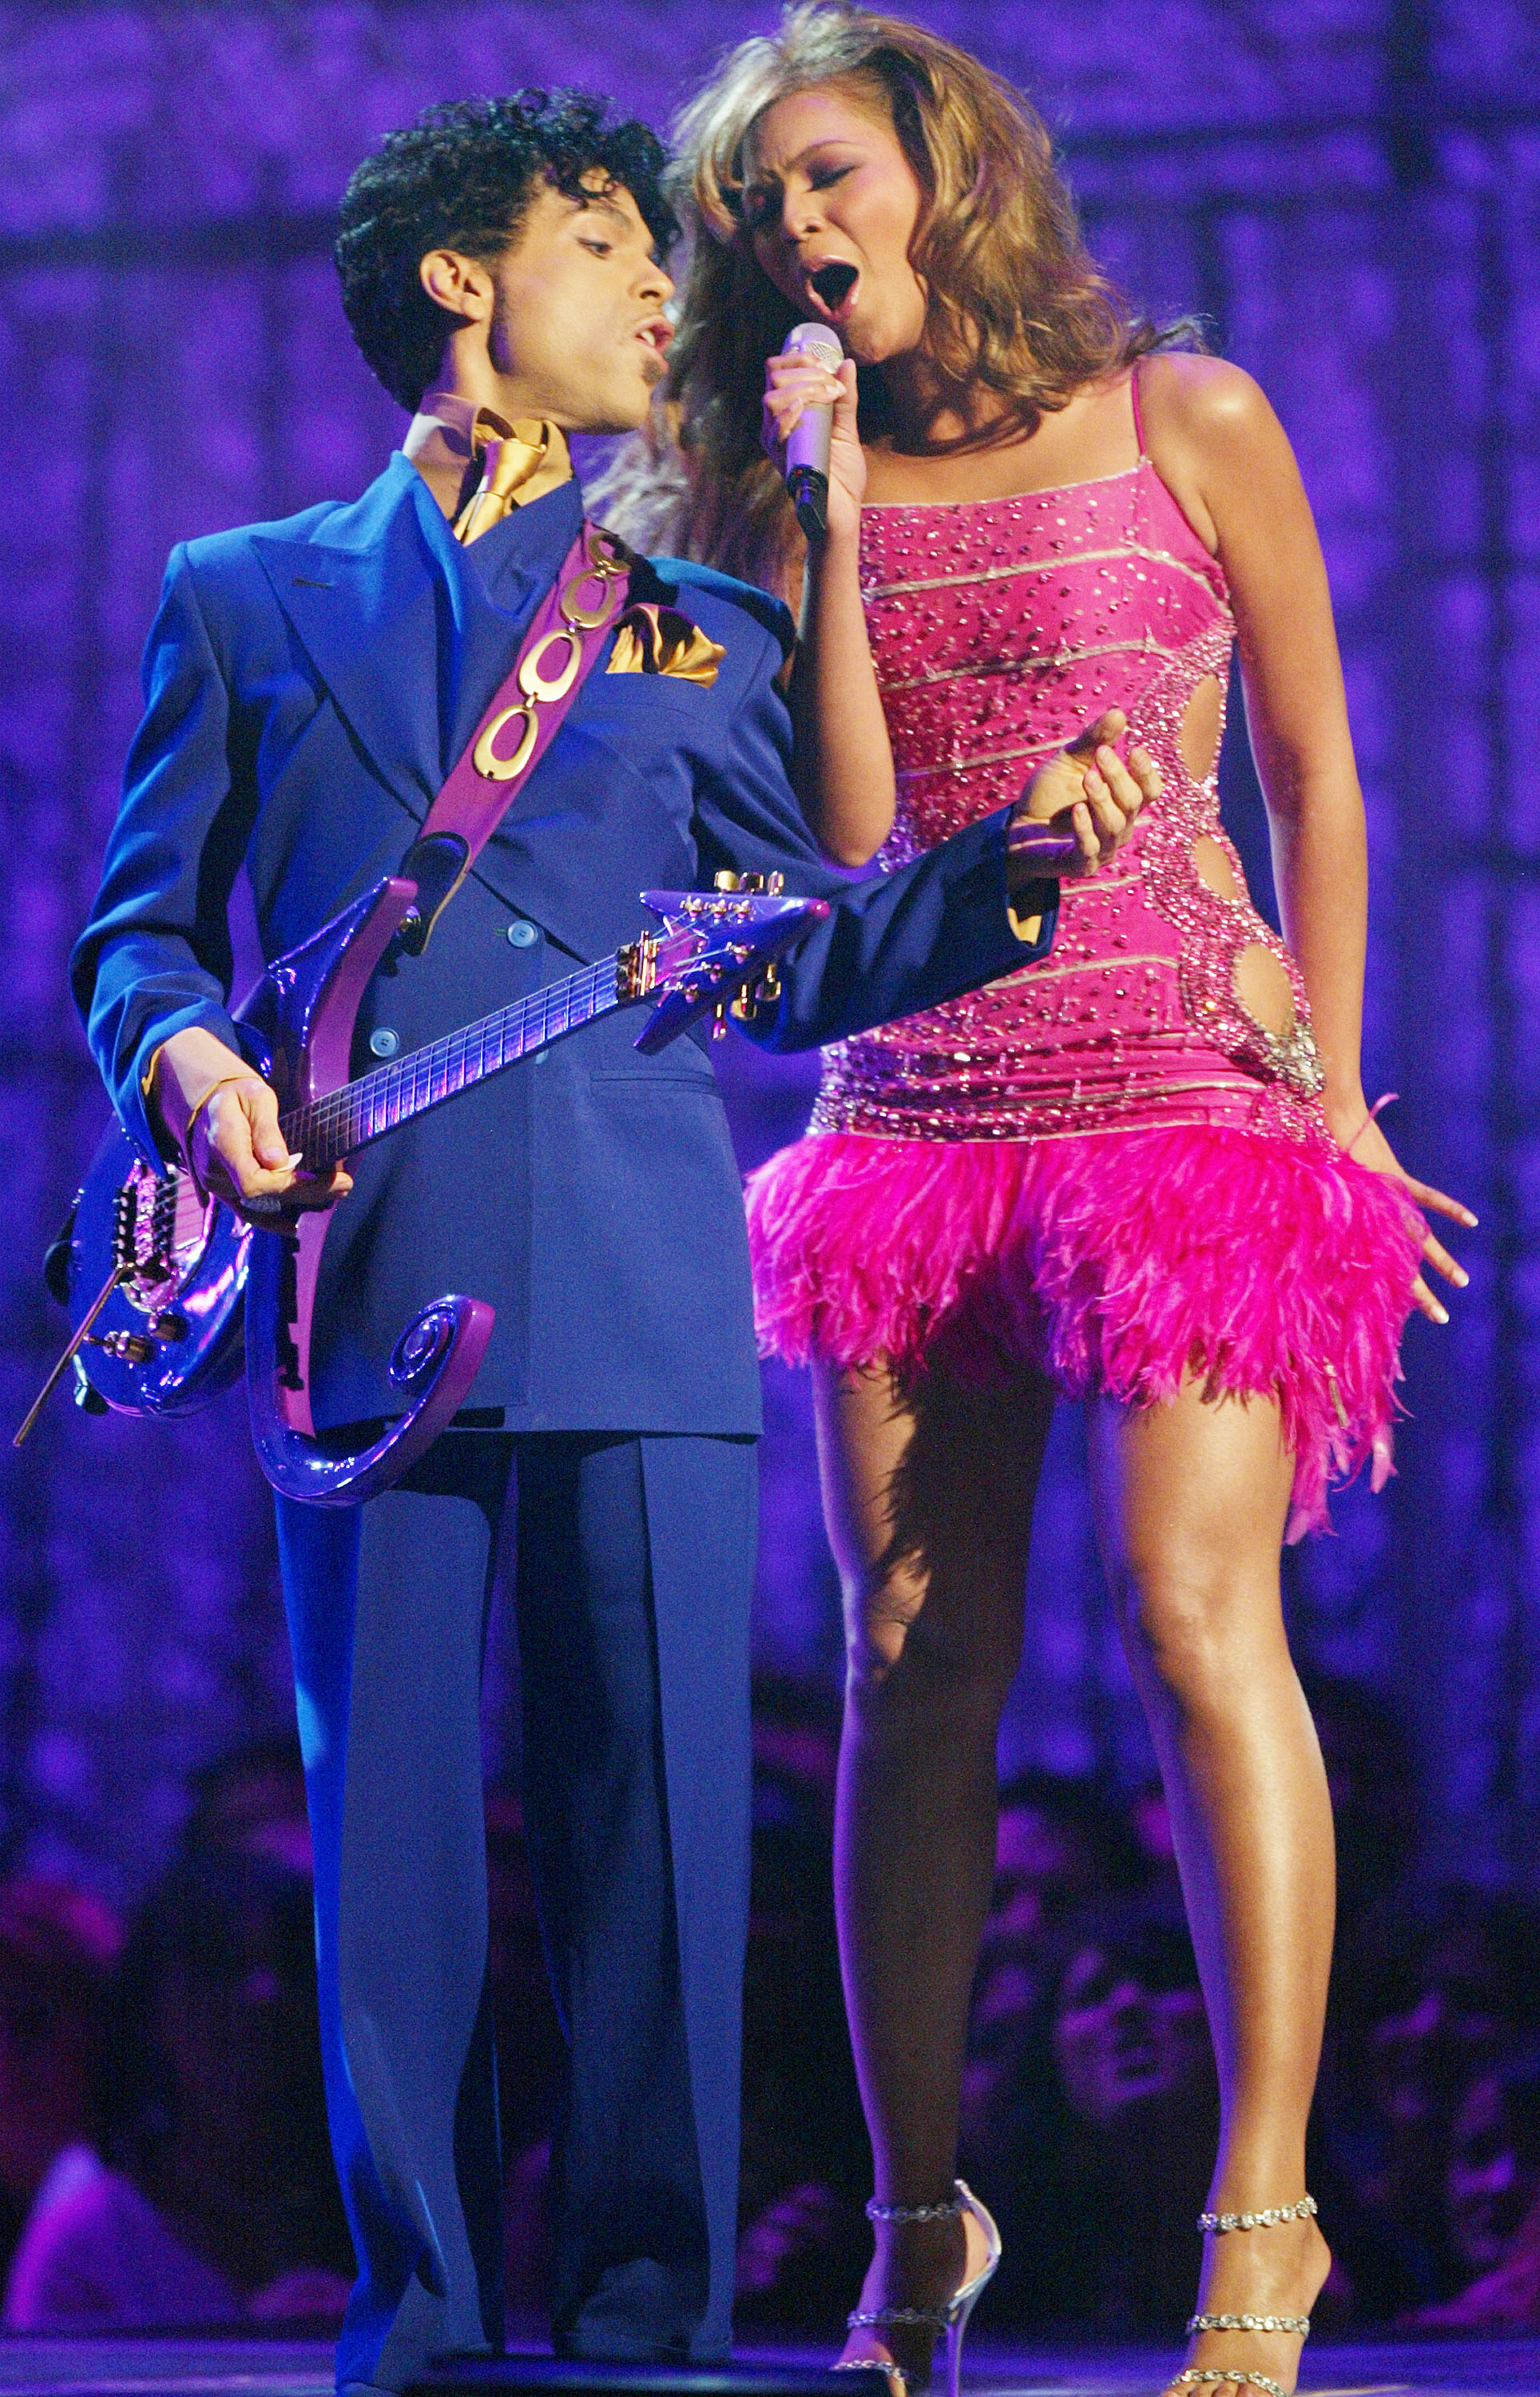 Beyoncé, right, and Prince perform at the 46th Annual Grammy Awards on Feb. 8, 2004 in Los Angeles.